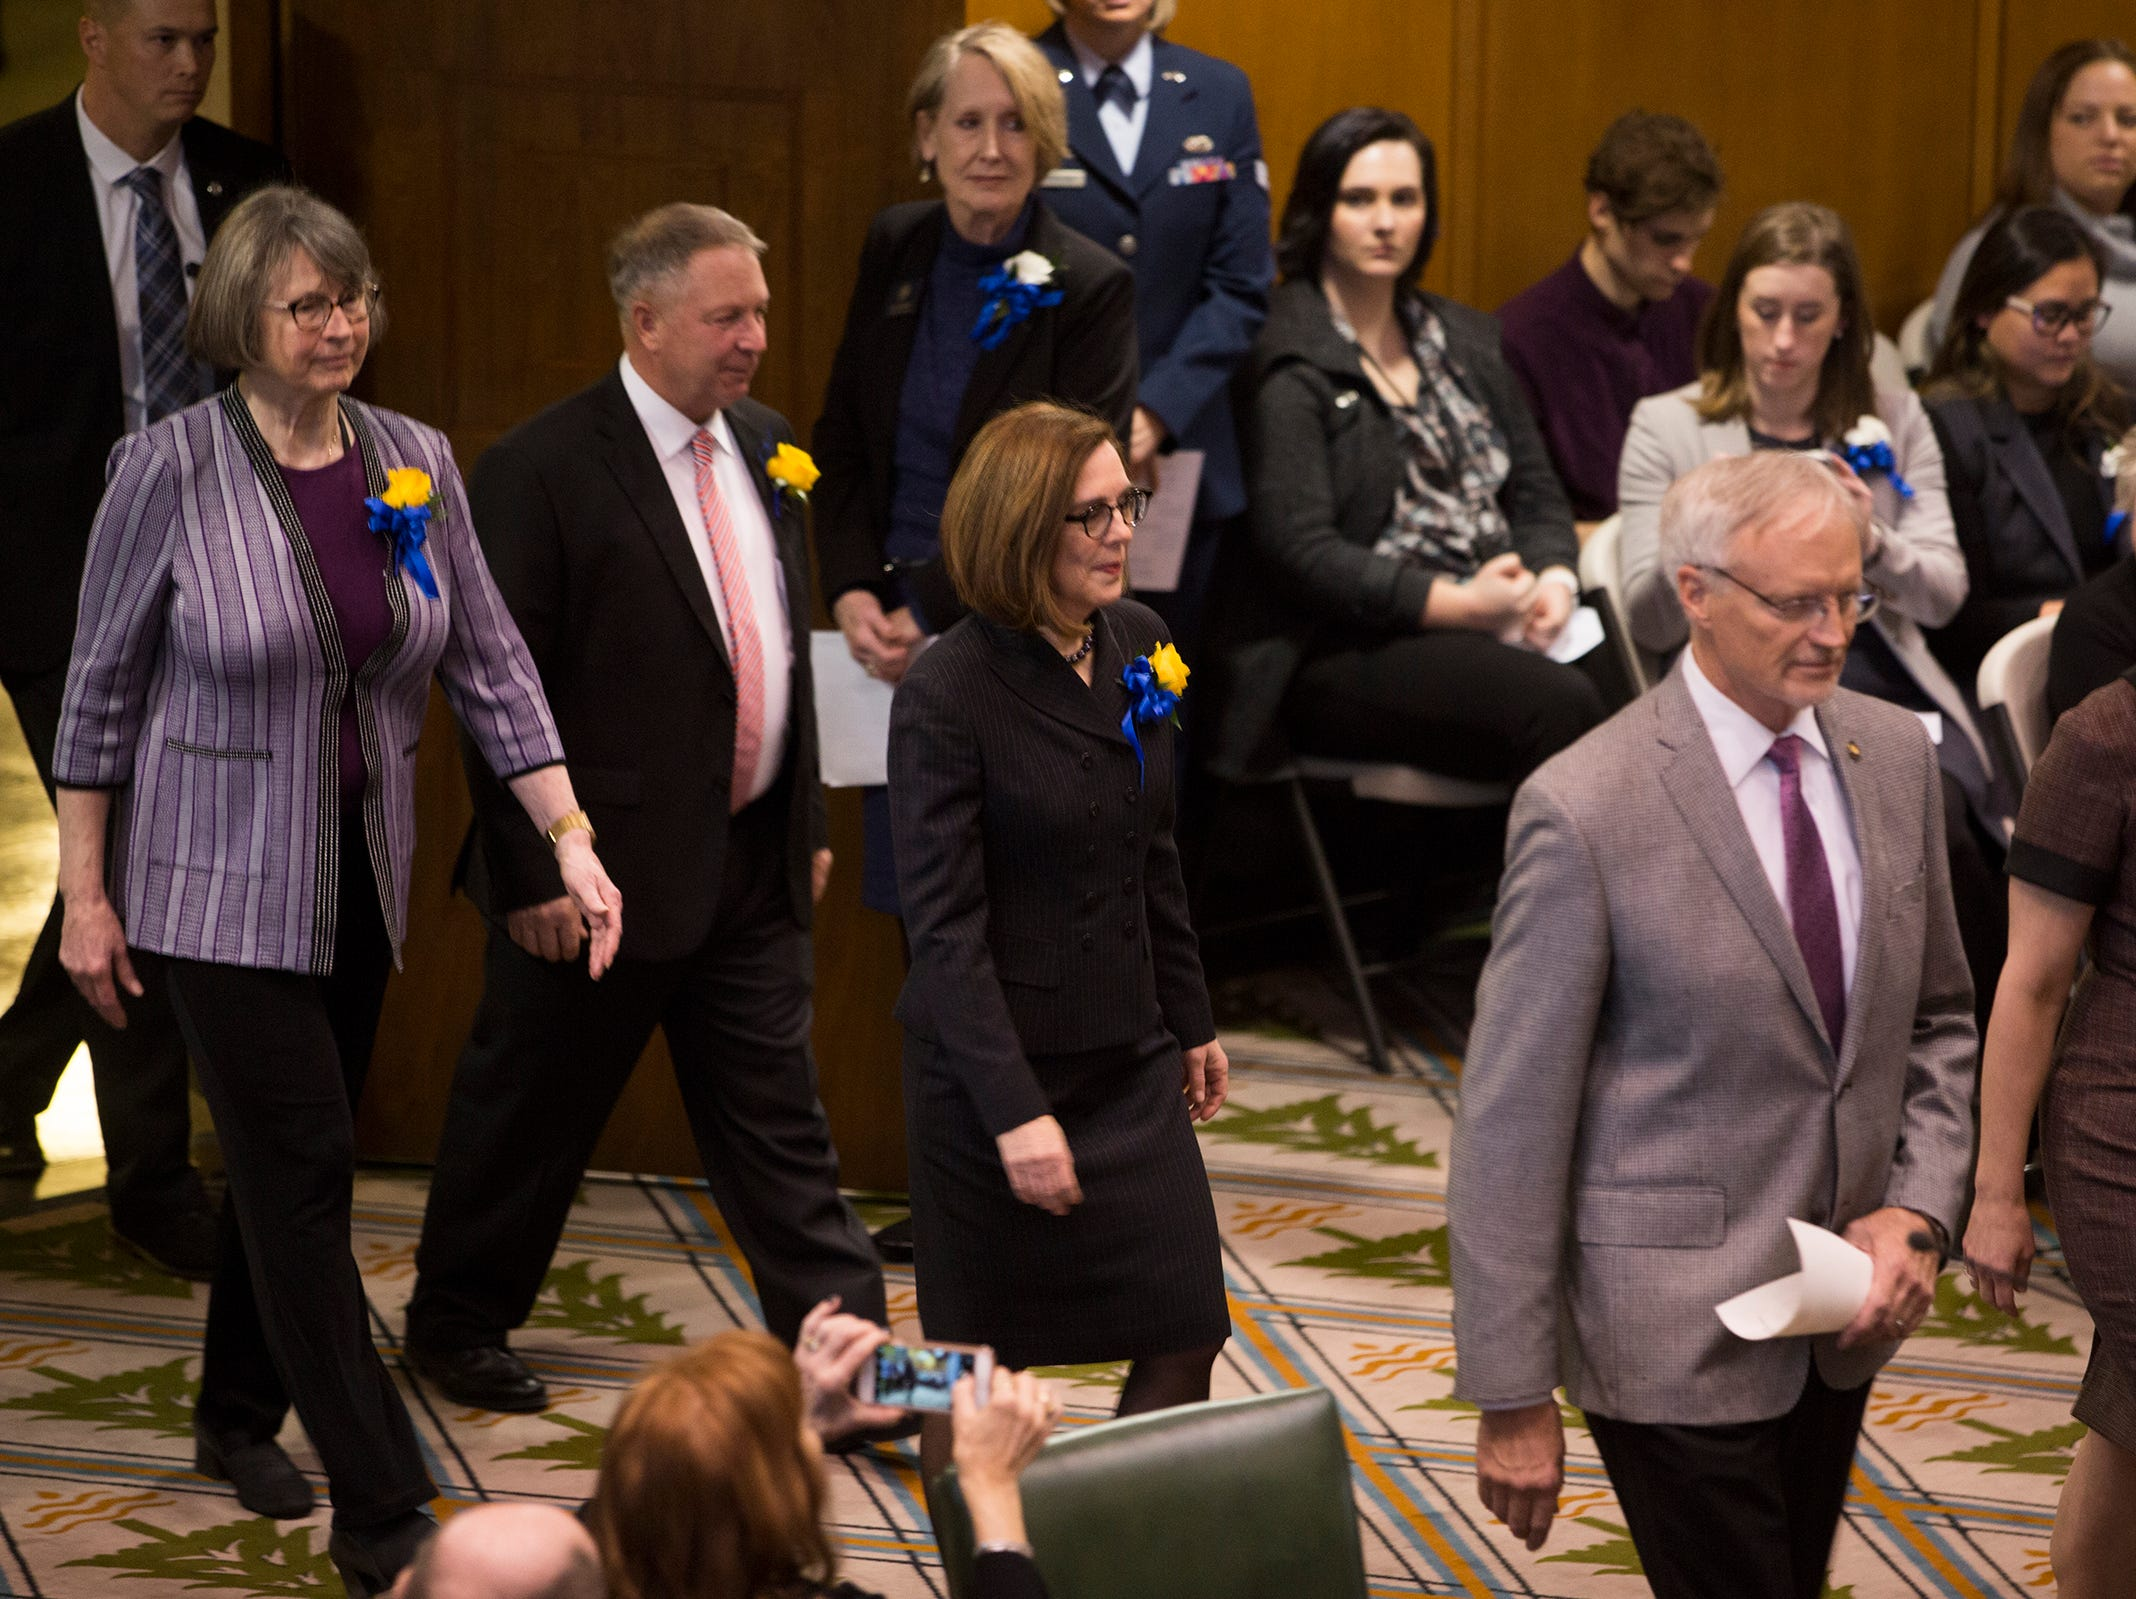 Governor Kate Brown walks in before she addresses the state legislature at her inauguration at the Oregon State Capitol on Jan. 14, 2019.